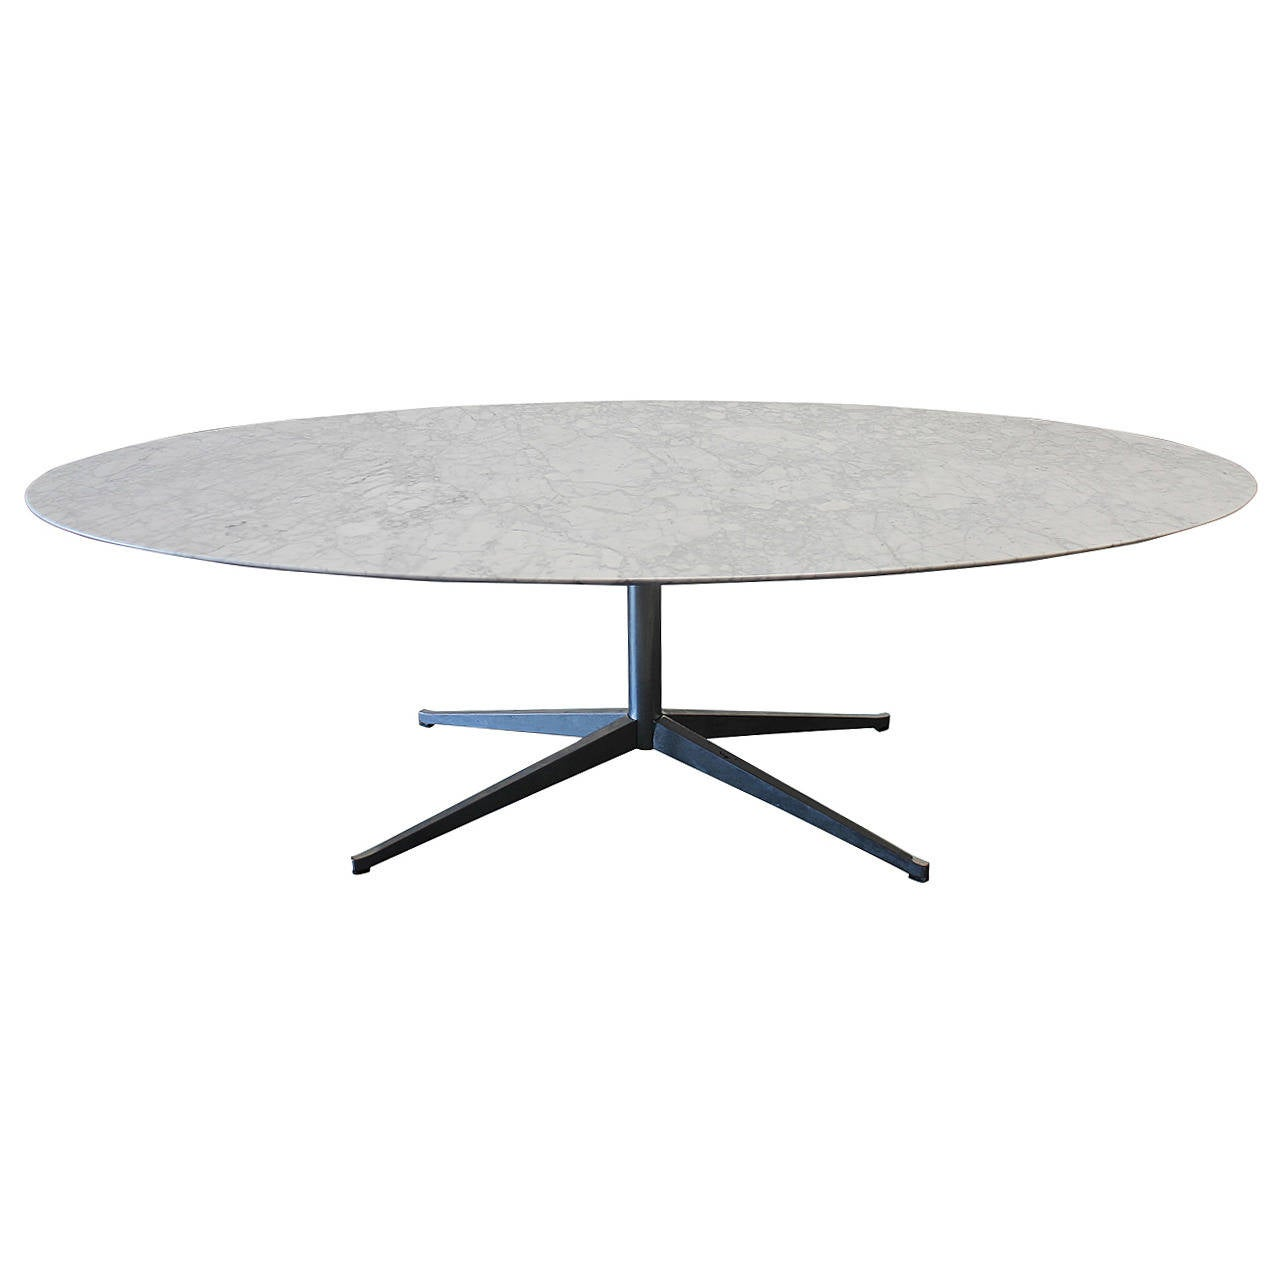 florence knoll marble top oval dining table for sale at 1stdibs. Black Bedroom Furniture Sets. Home Design Ideas